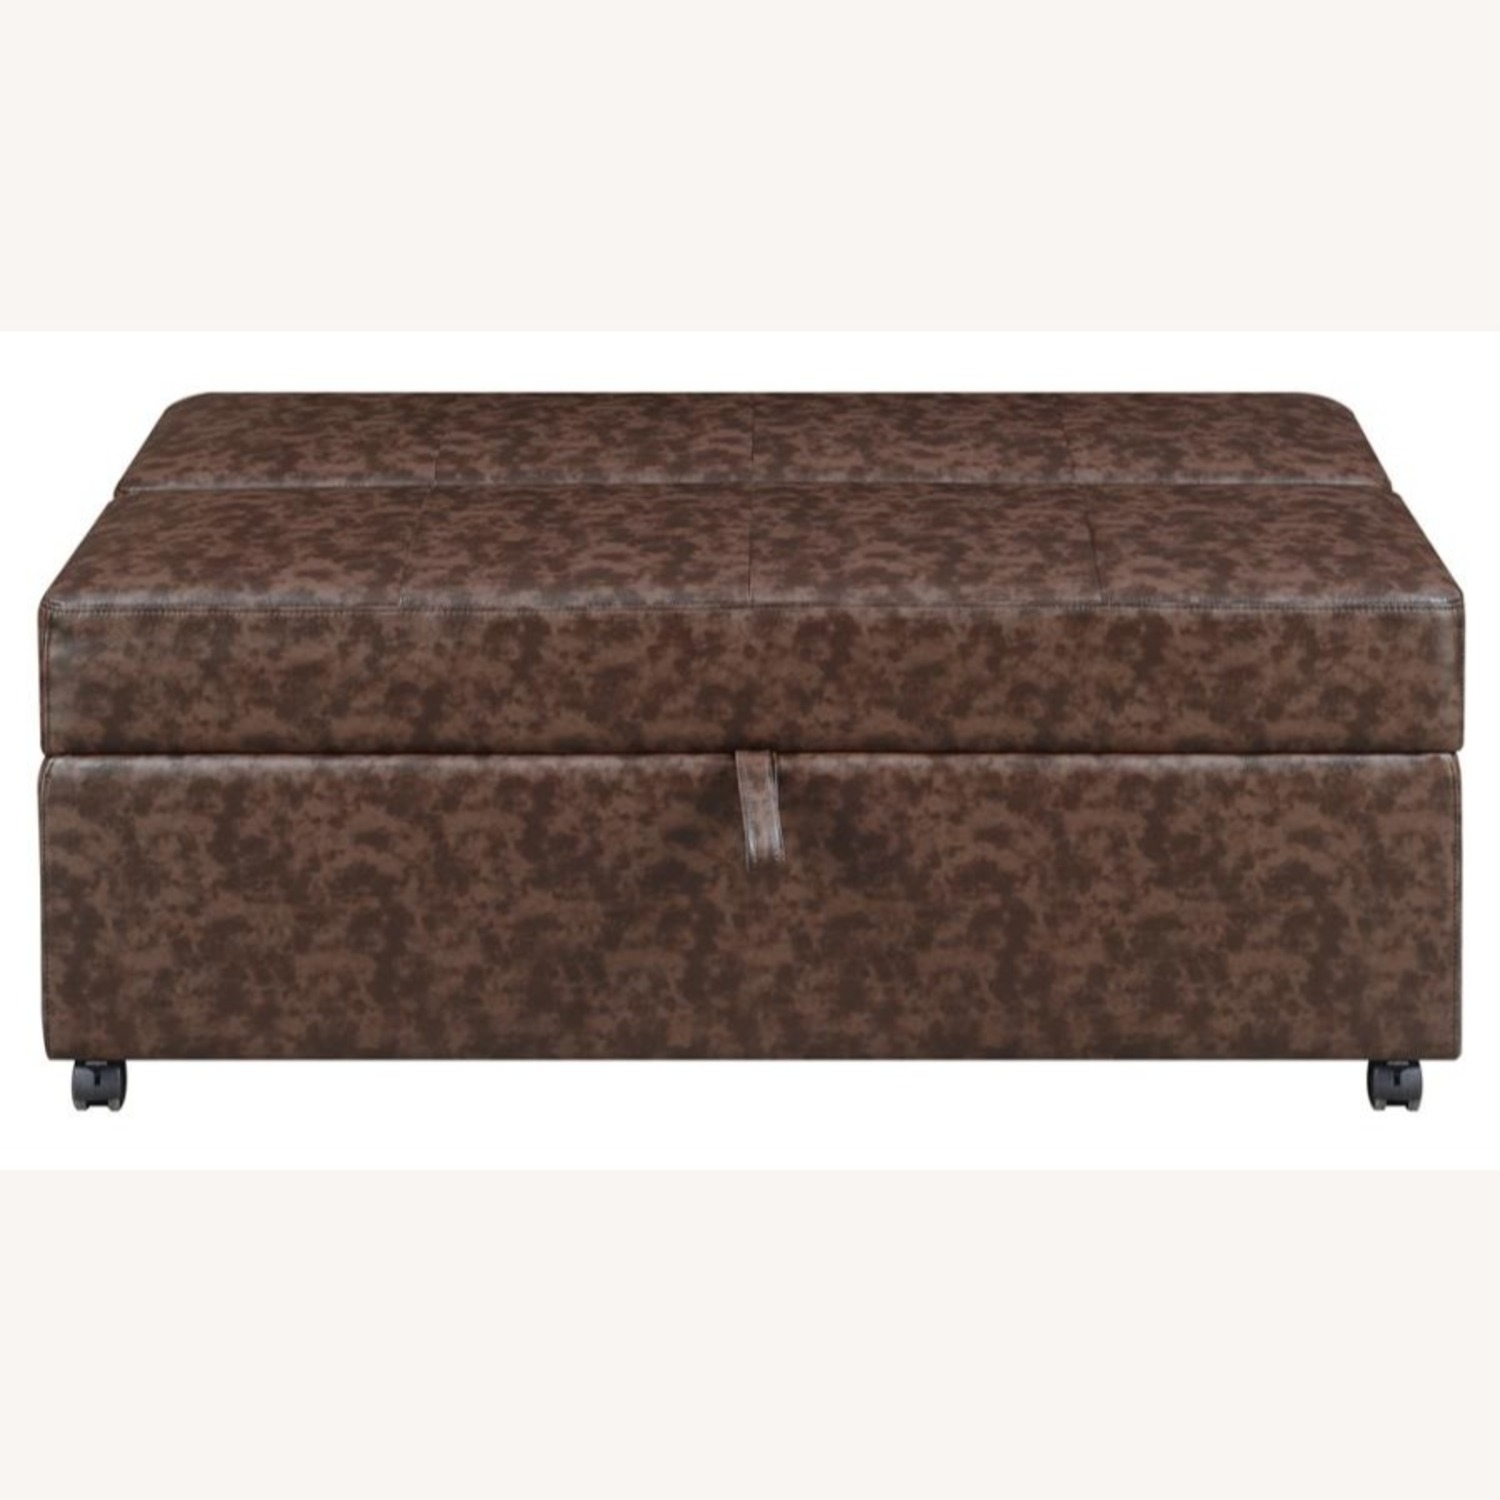 Multi-Functional Ottoman In Dark Brown Leatherette - image-1